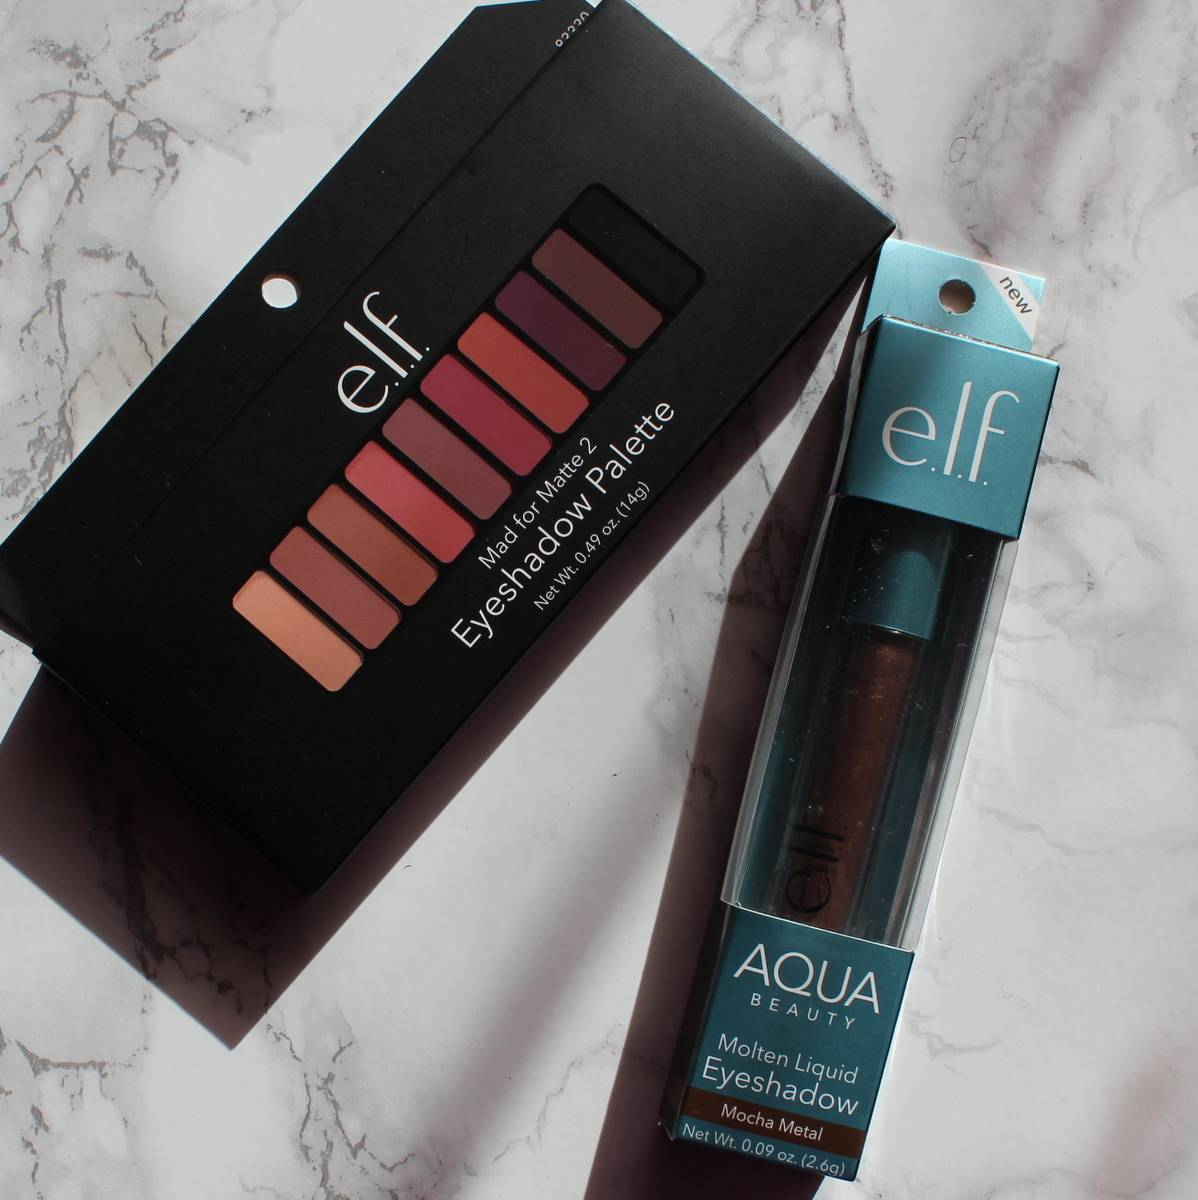 e.l.f cosmetics mad for matte 2 and aqua eyeshadow